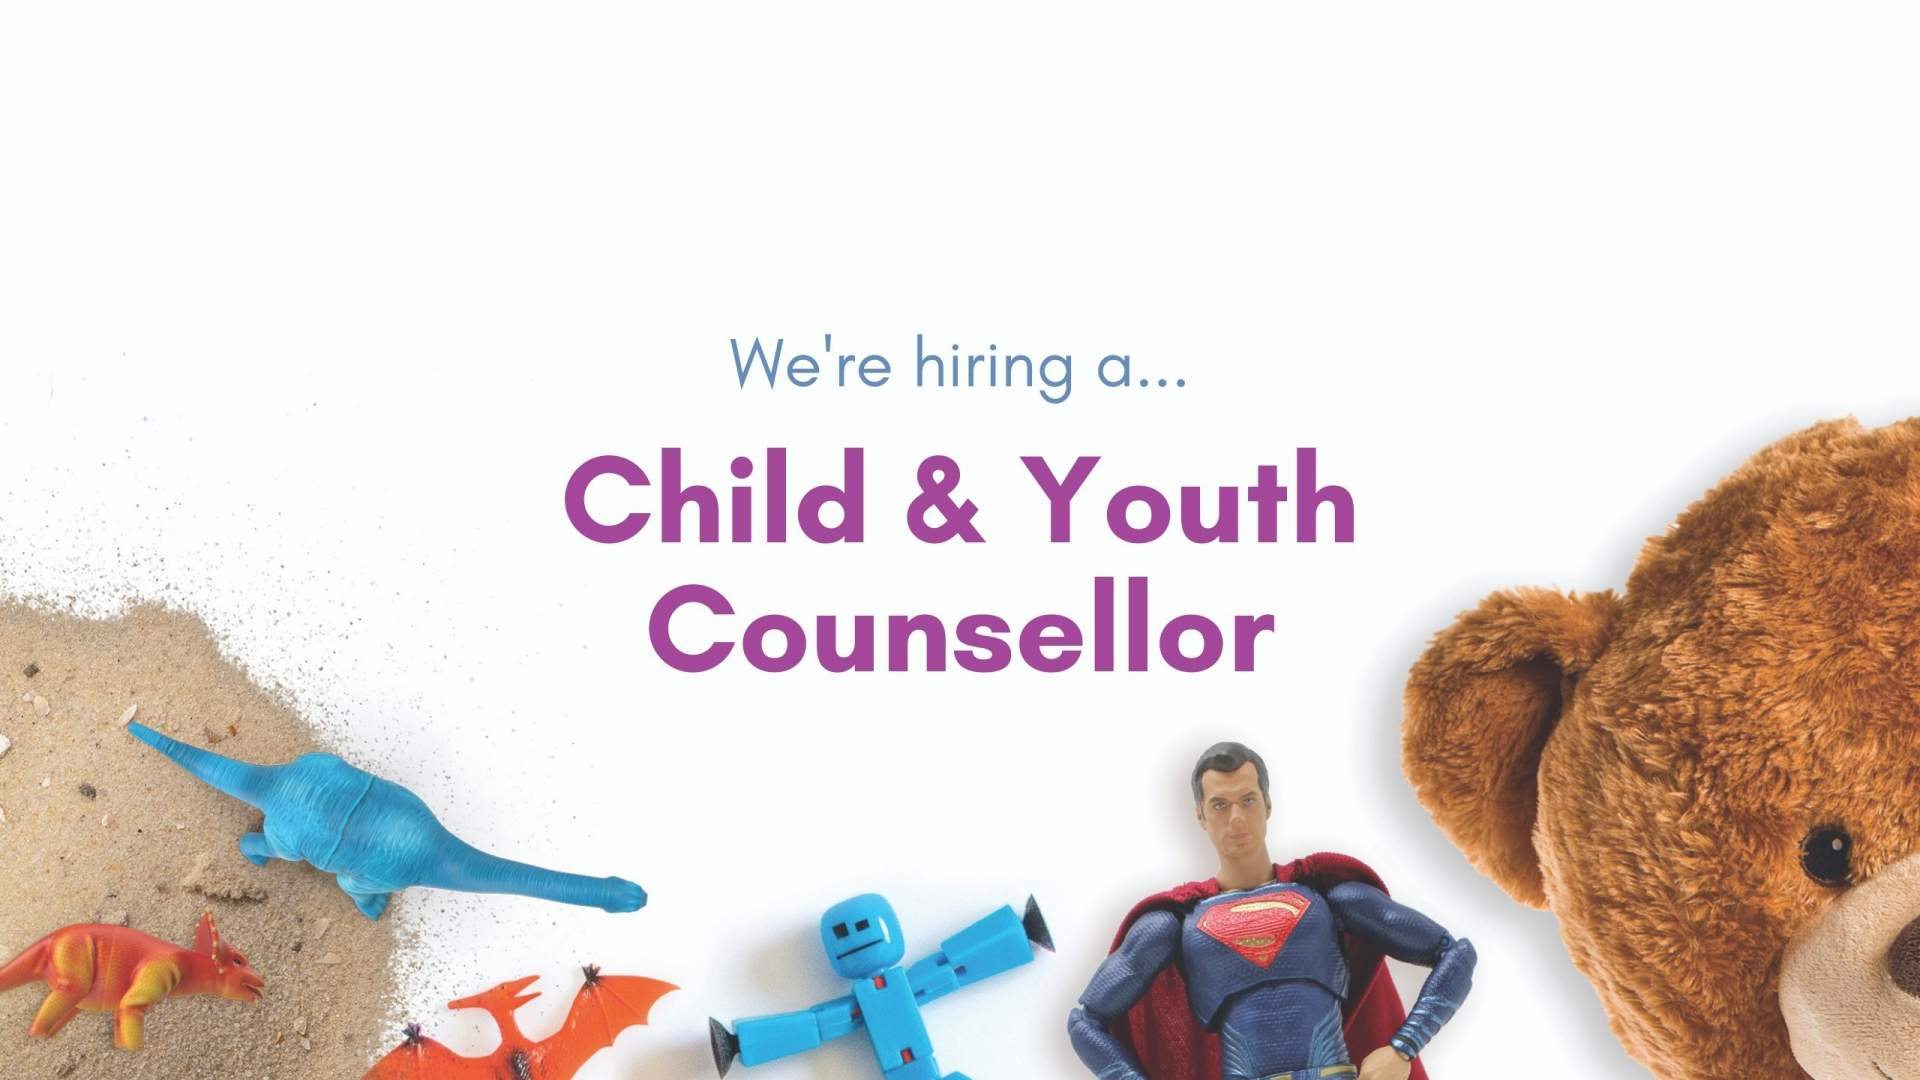 We Are Hiring A Child & Youth Counsellor